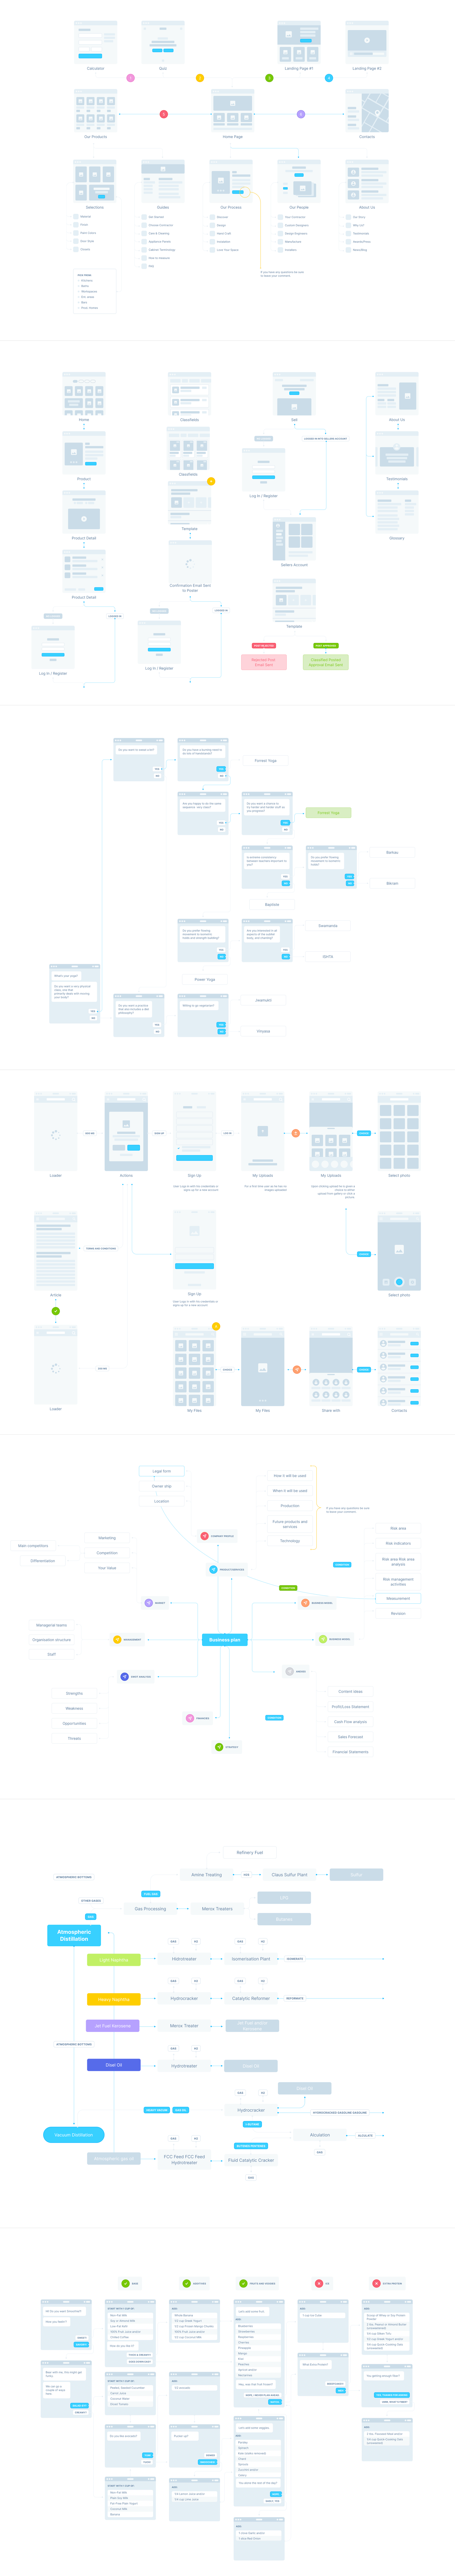 UX Flow - Wireframe Prototyping System - A simple, convenient, intuitive way to create complex schemes and maps. Easy-to-use constructor. Different types of schemes for your favorite app. A professional and powerful UI kit for your awesome projects absolutely for free!